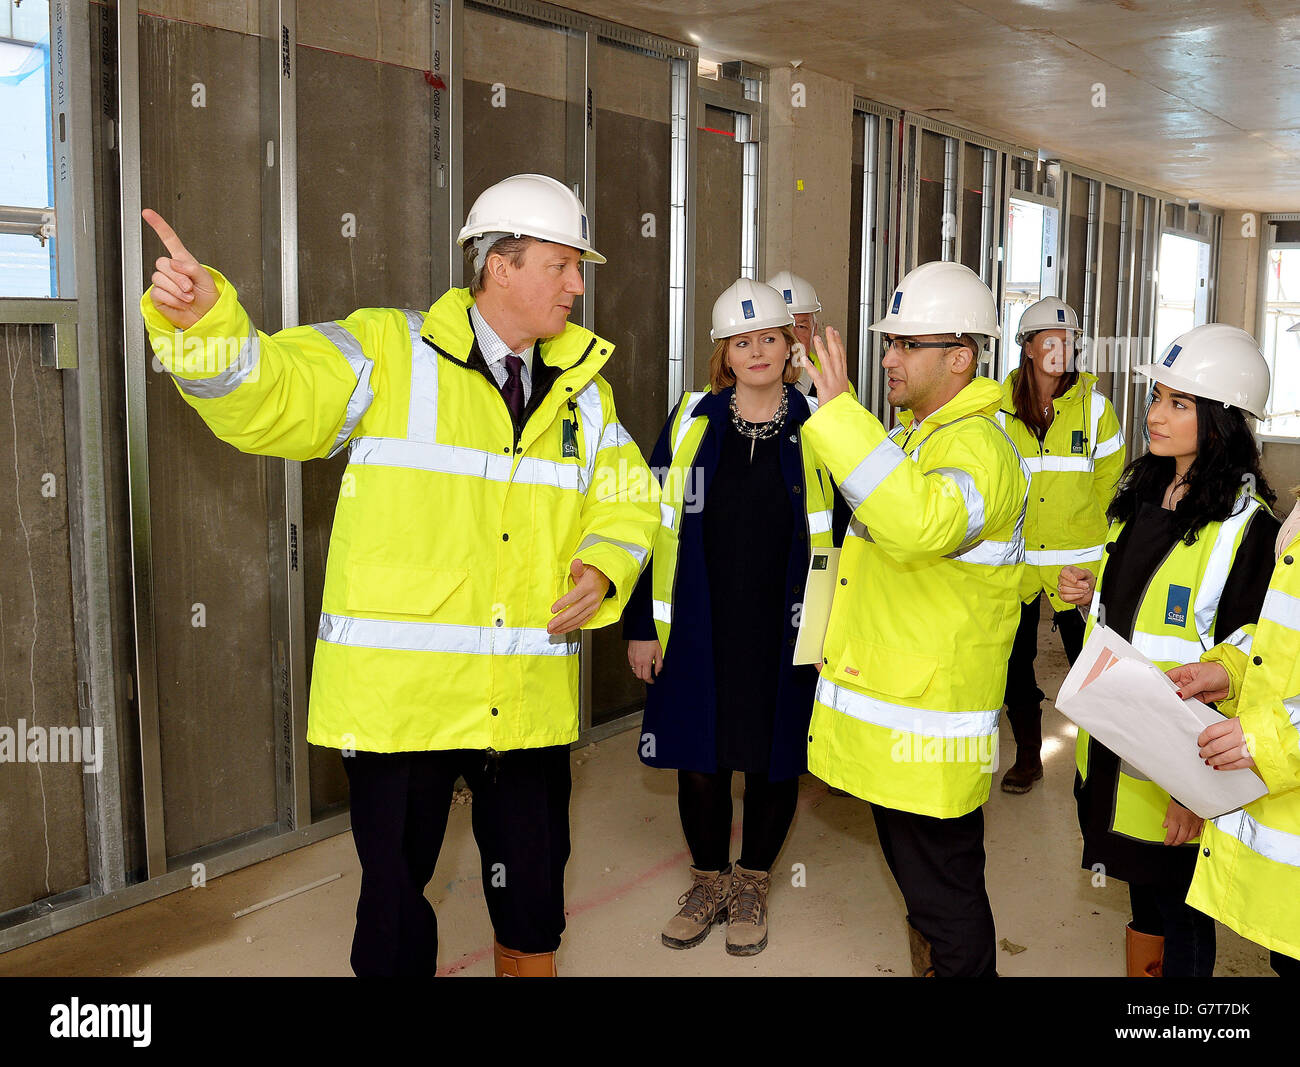 Cameron visit to building site Stock Photo